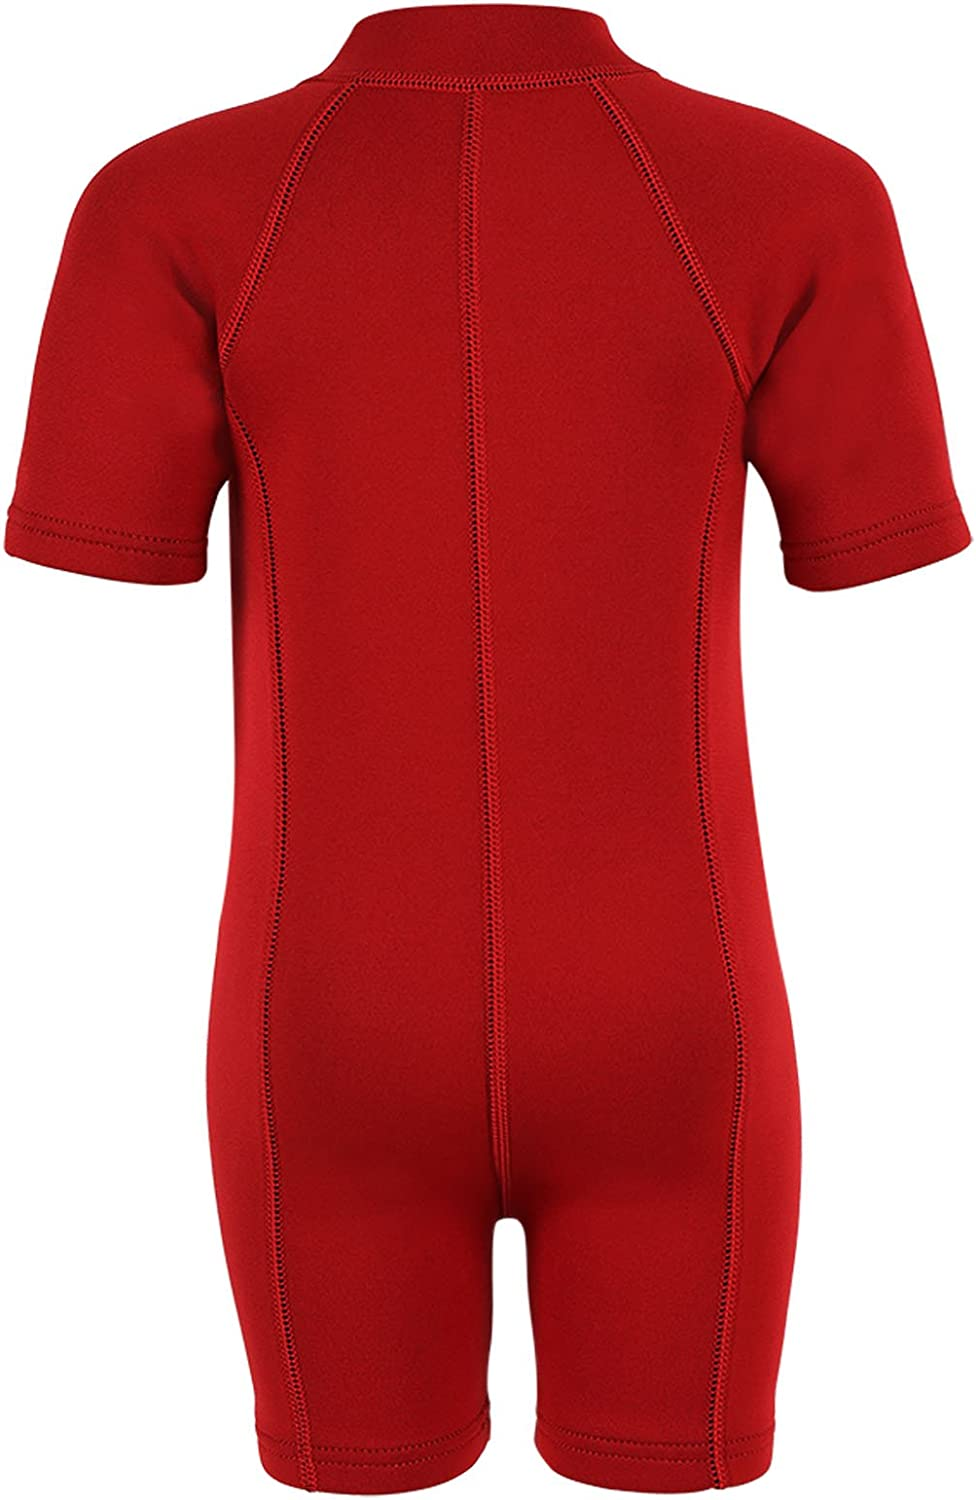 Aquatica Baby Toddler Wetsuit First Wetsuit Full Neoprene M, Red